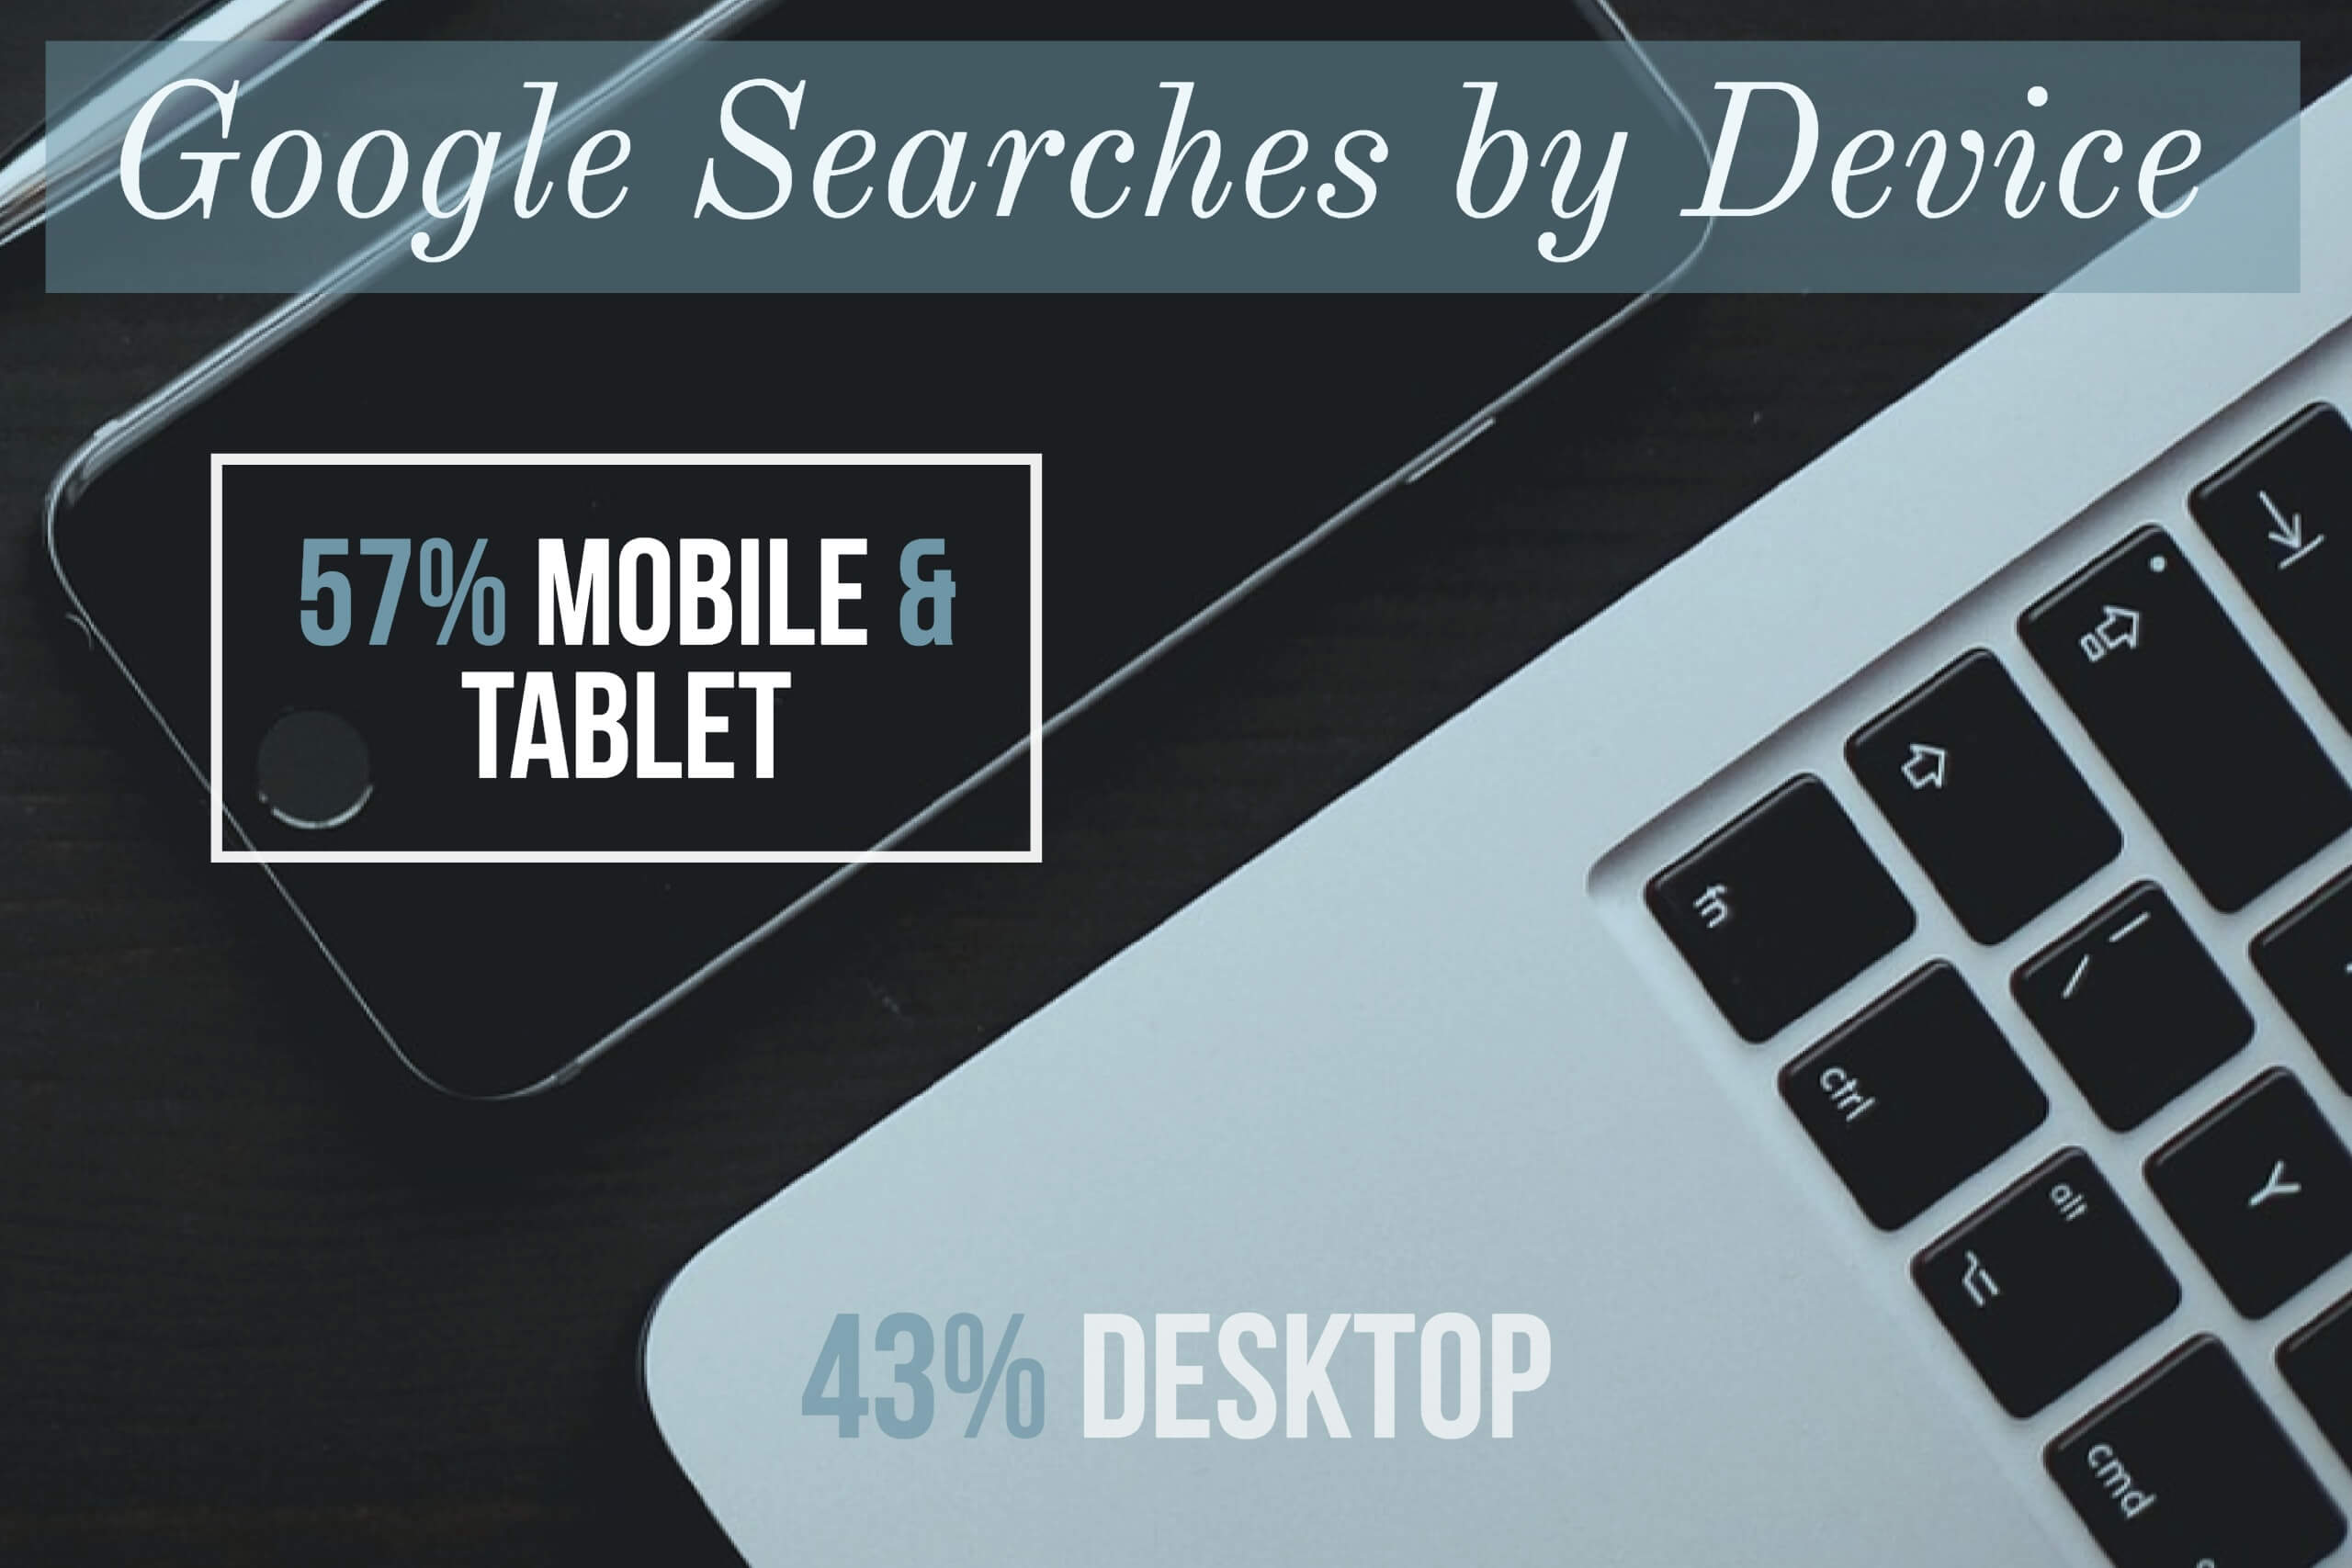 Google Searches by Device